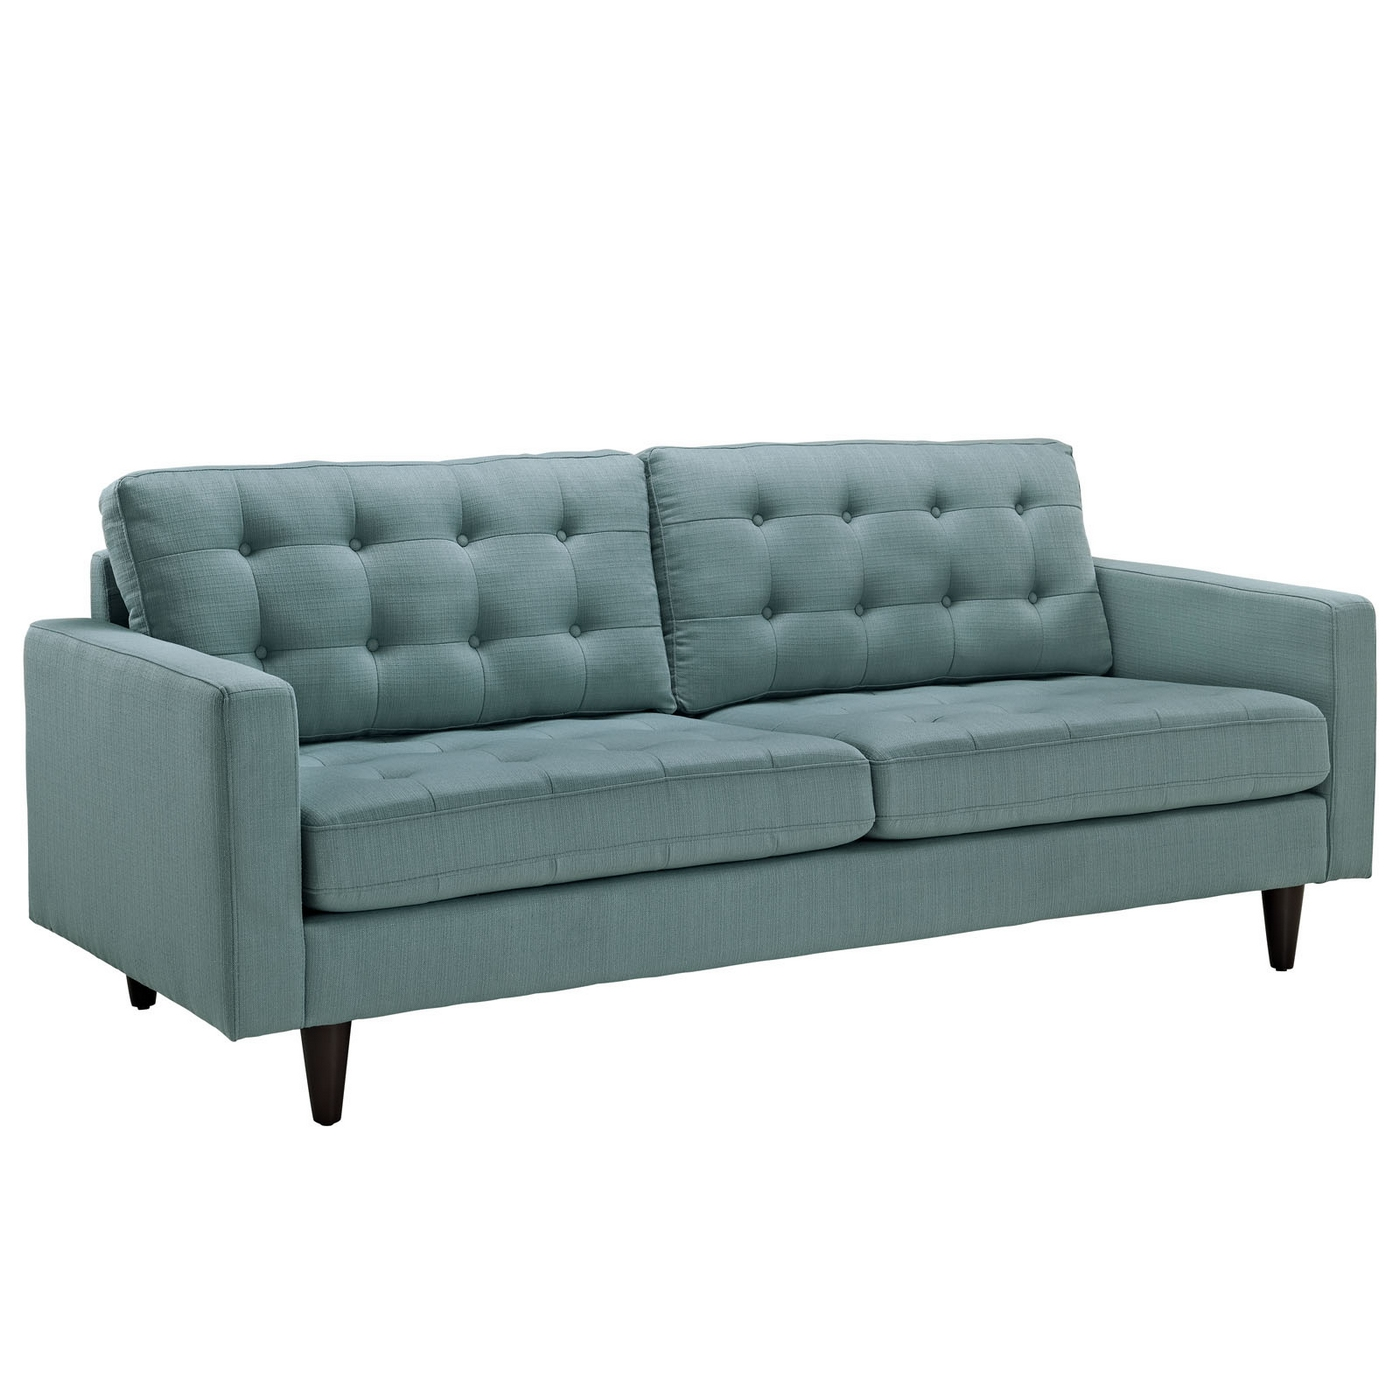 Empress contemporary button tufted upholstered sofa laguna Designer loveseats